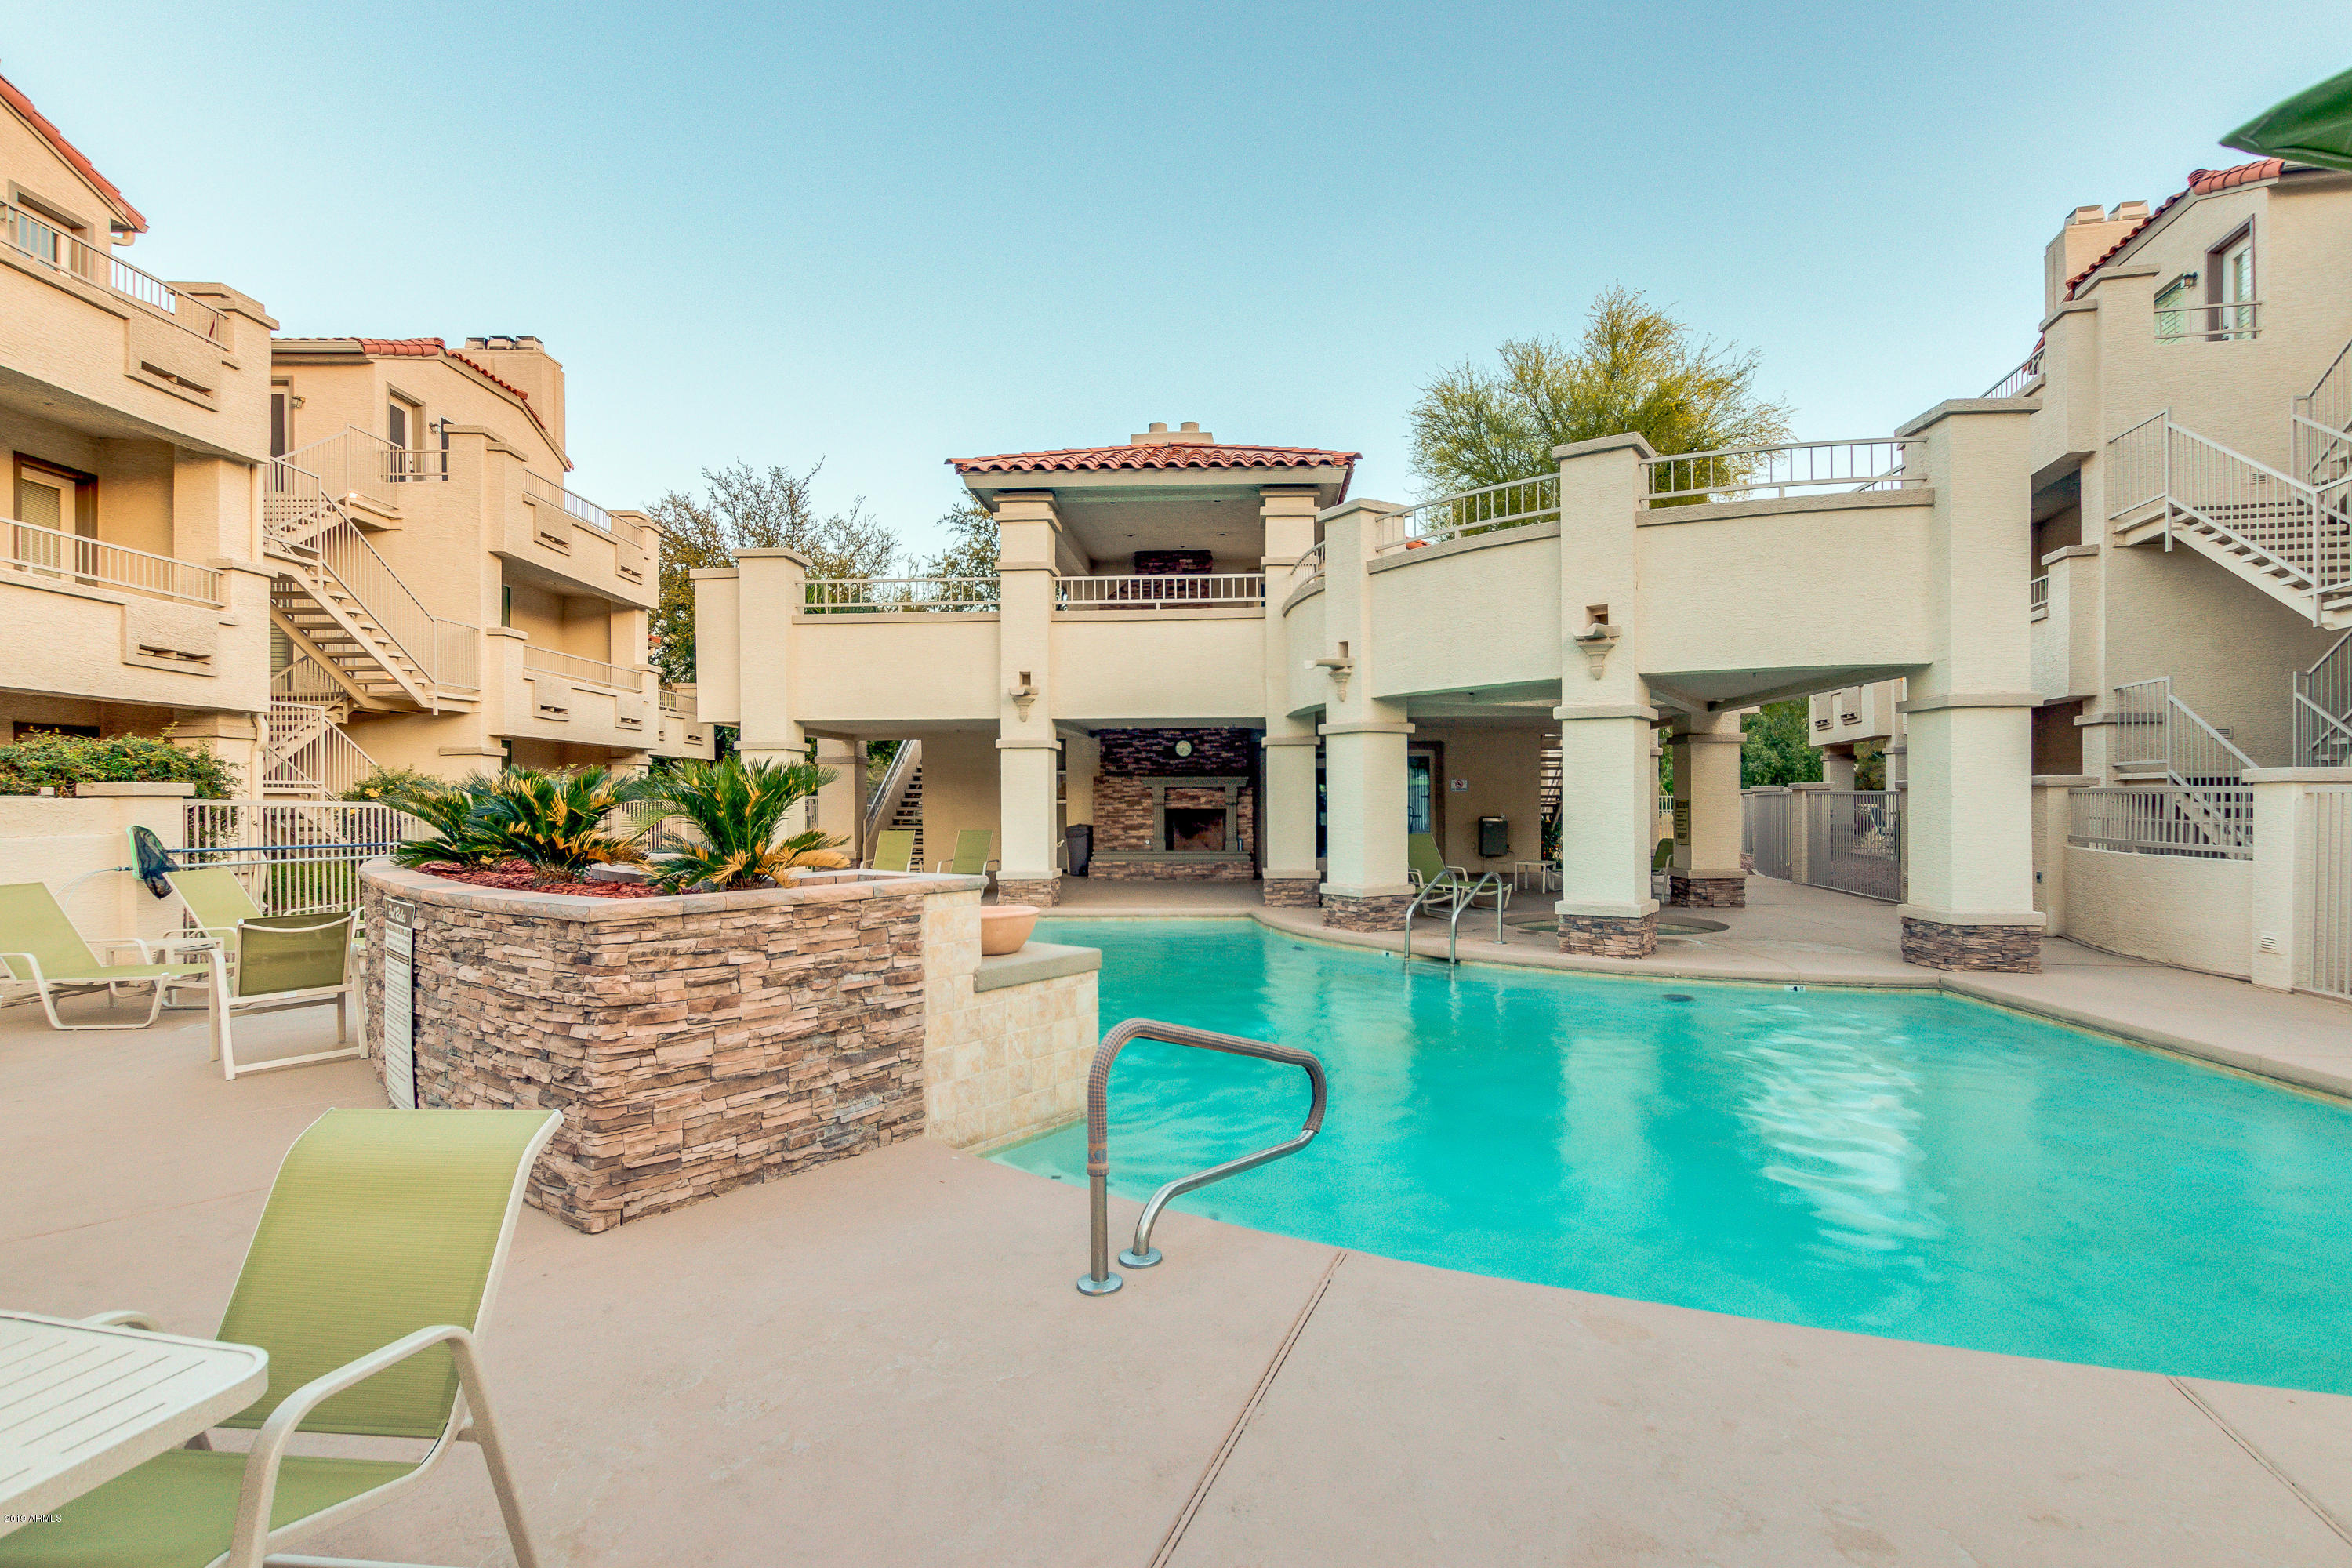 MLS 5917289 10080 E MOUNTAINVIEW LAKE Drive Unit 260 Building, Scottsdale, AZ 85258 Scottsdale AZ Private Pool